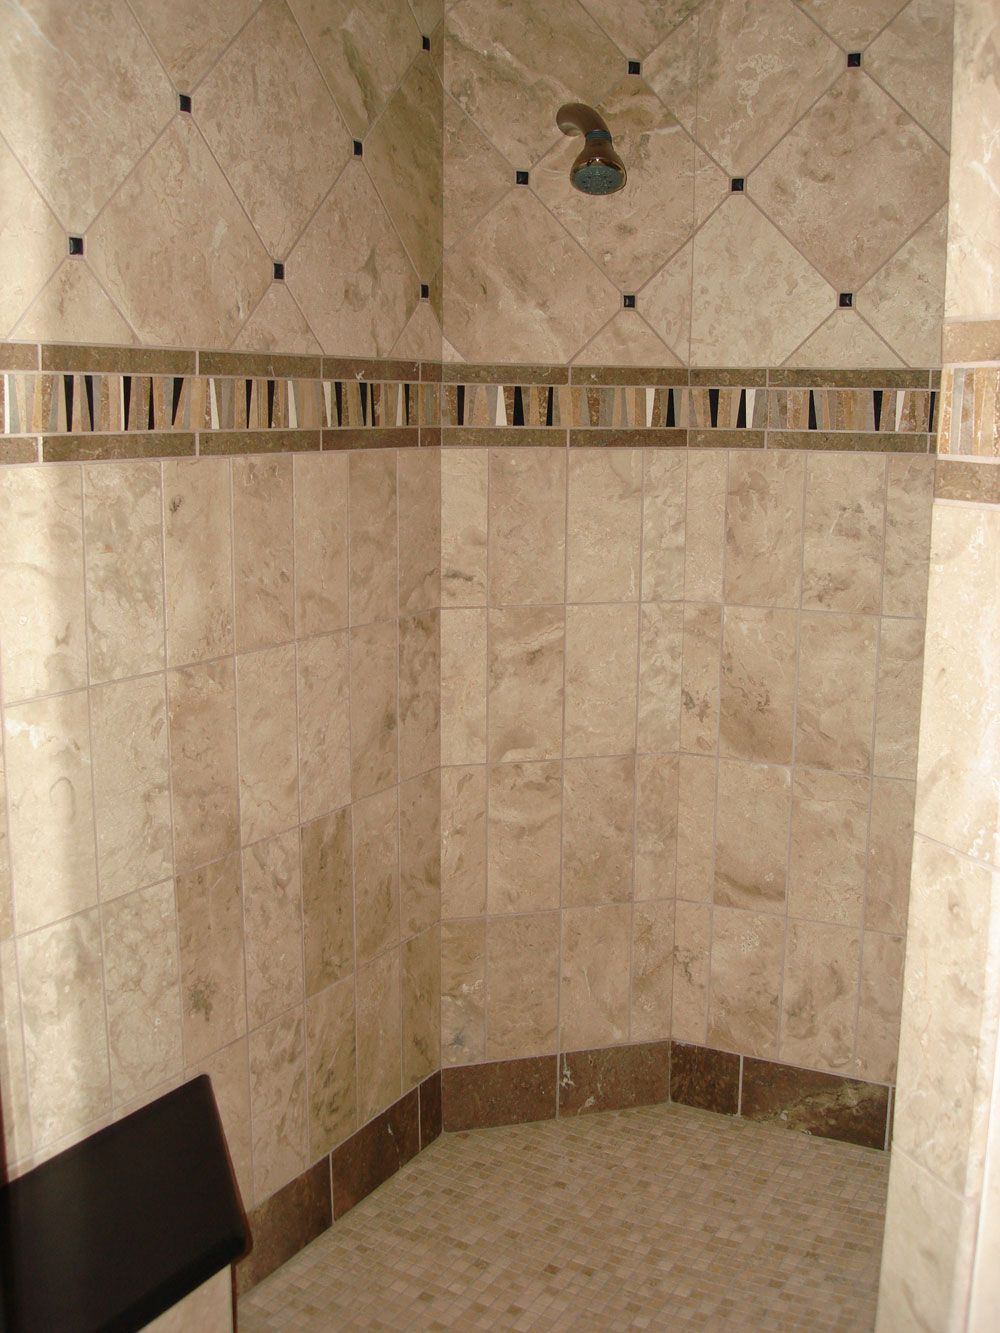 Bathroom Cream Color Feat Brown Line Combine Travertine Tile In Glamorous Furniture Cool Decorating Ideas